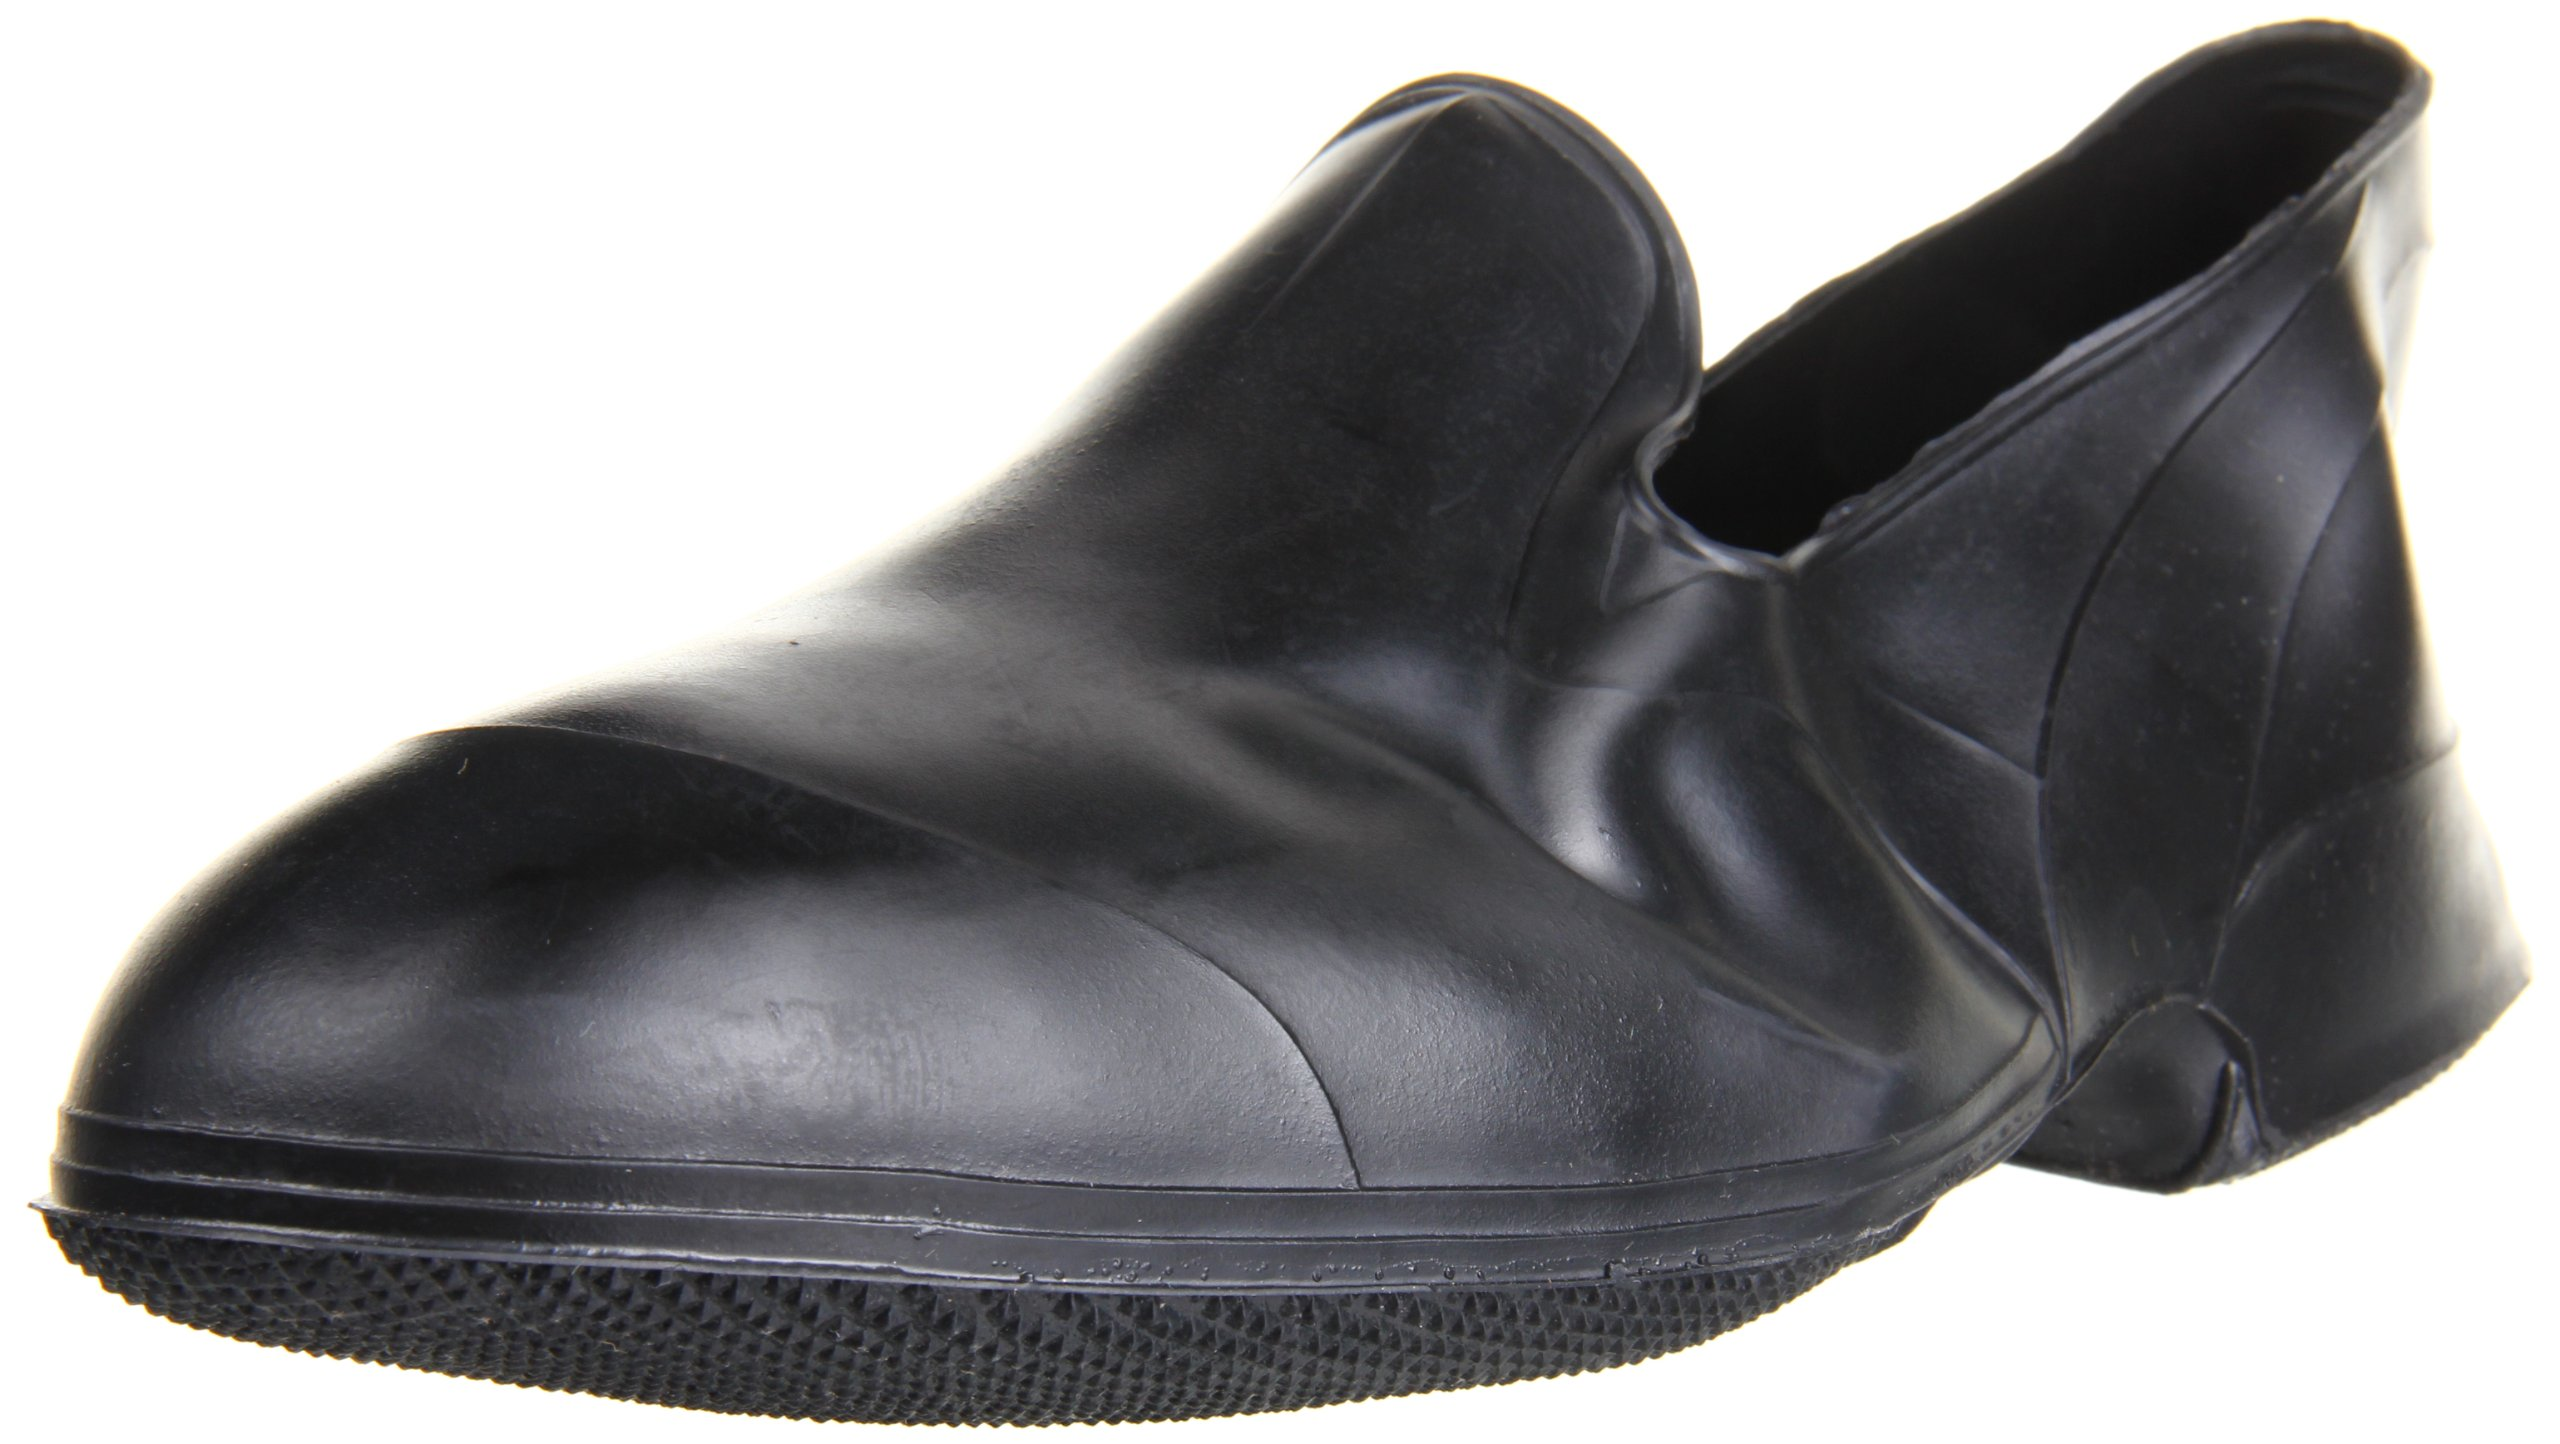 Tingley Men's Storm Stretch Overshoe,Black,X-Large/11-13 M US by TINGLEY